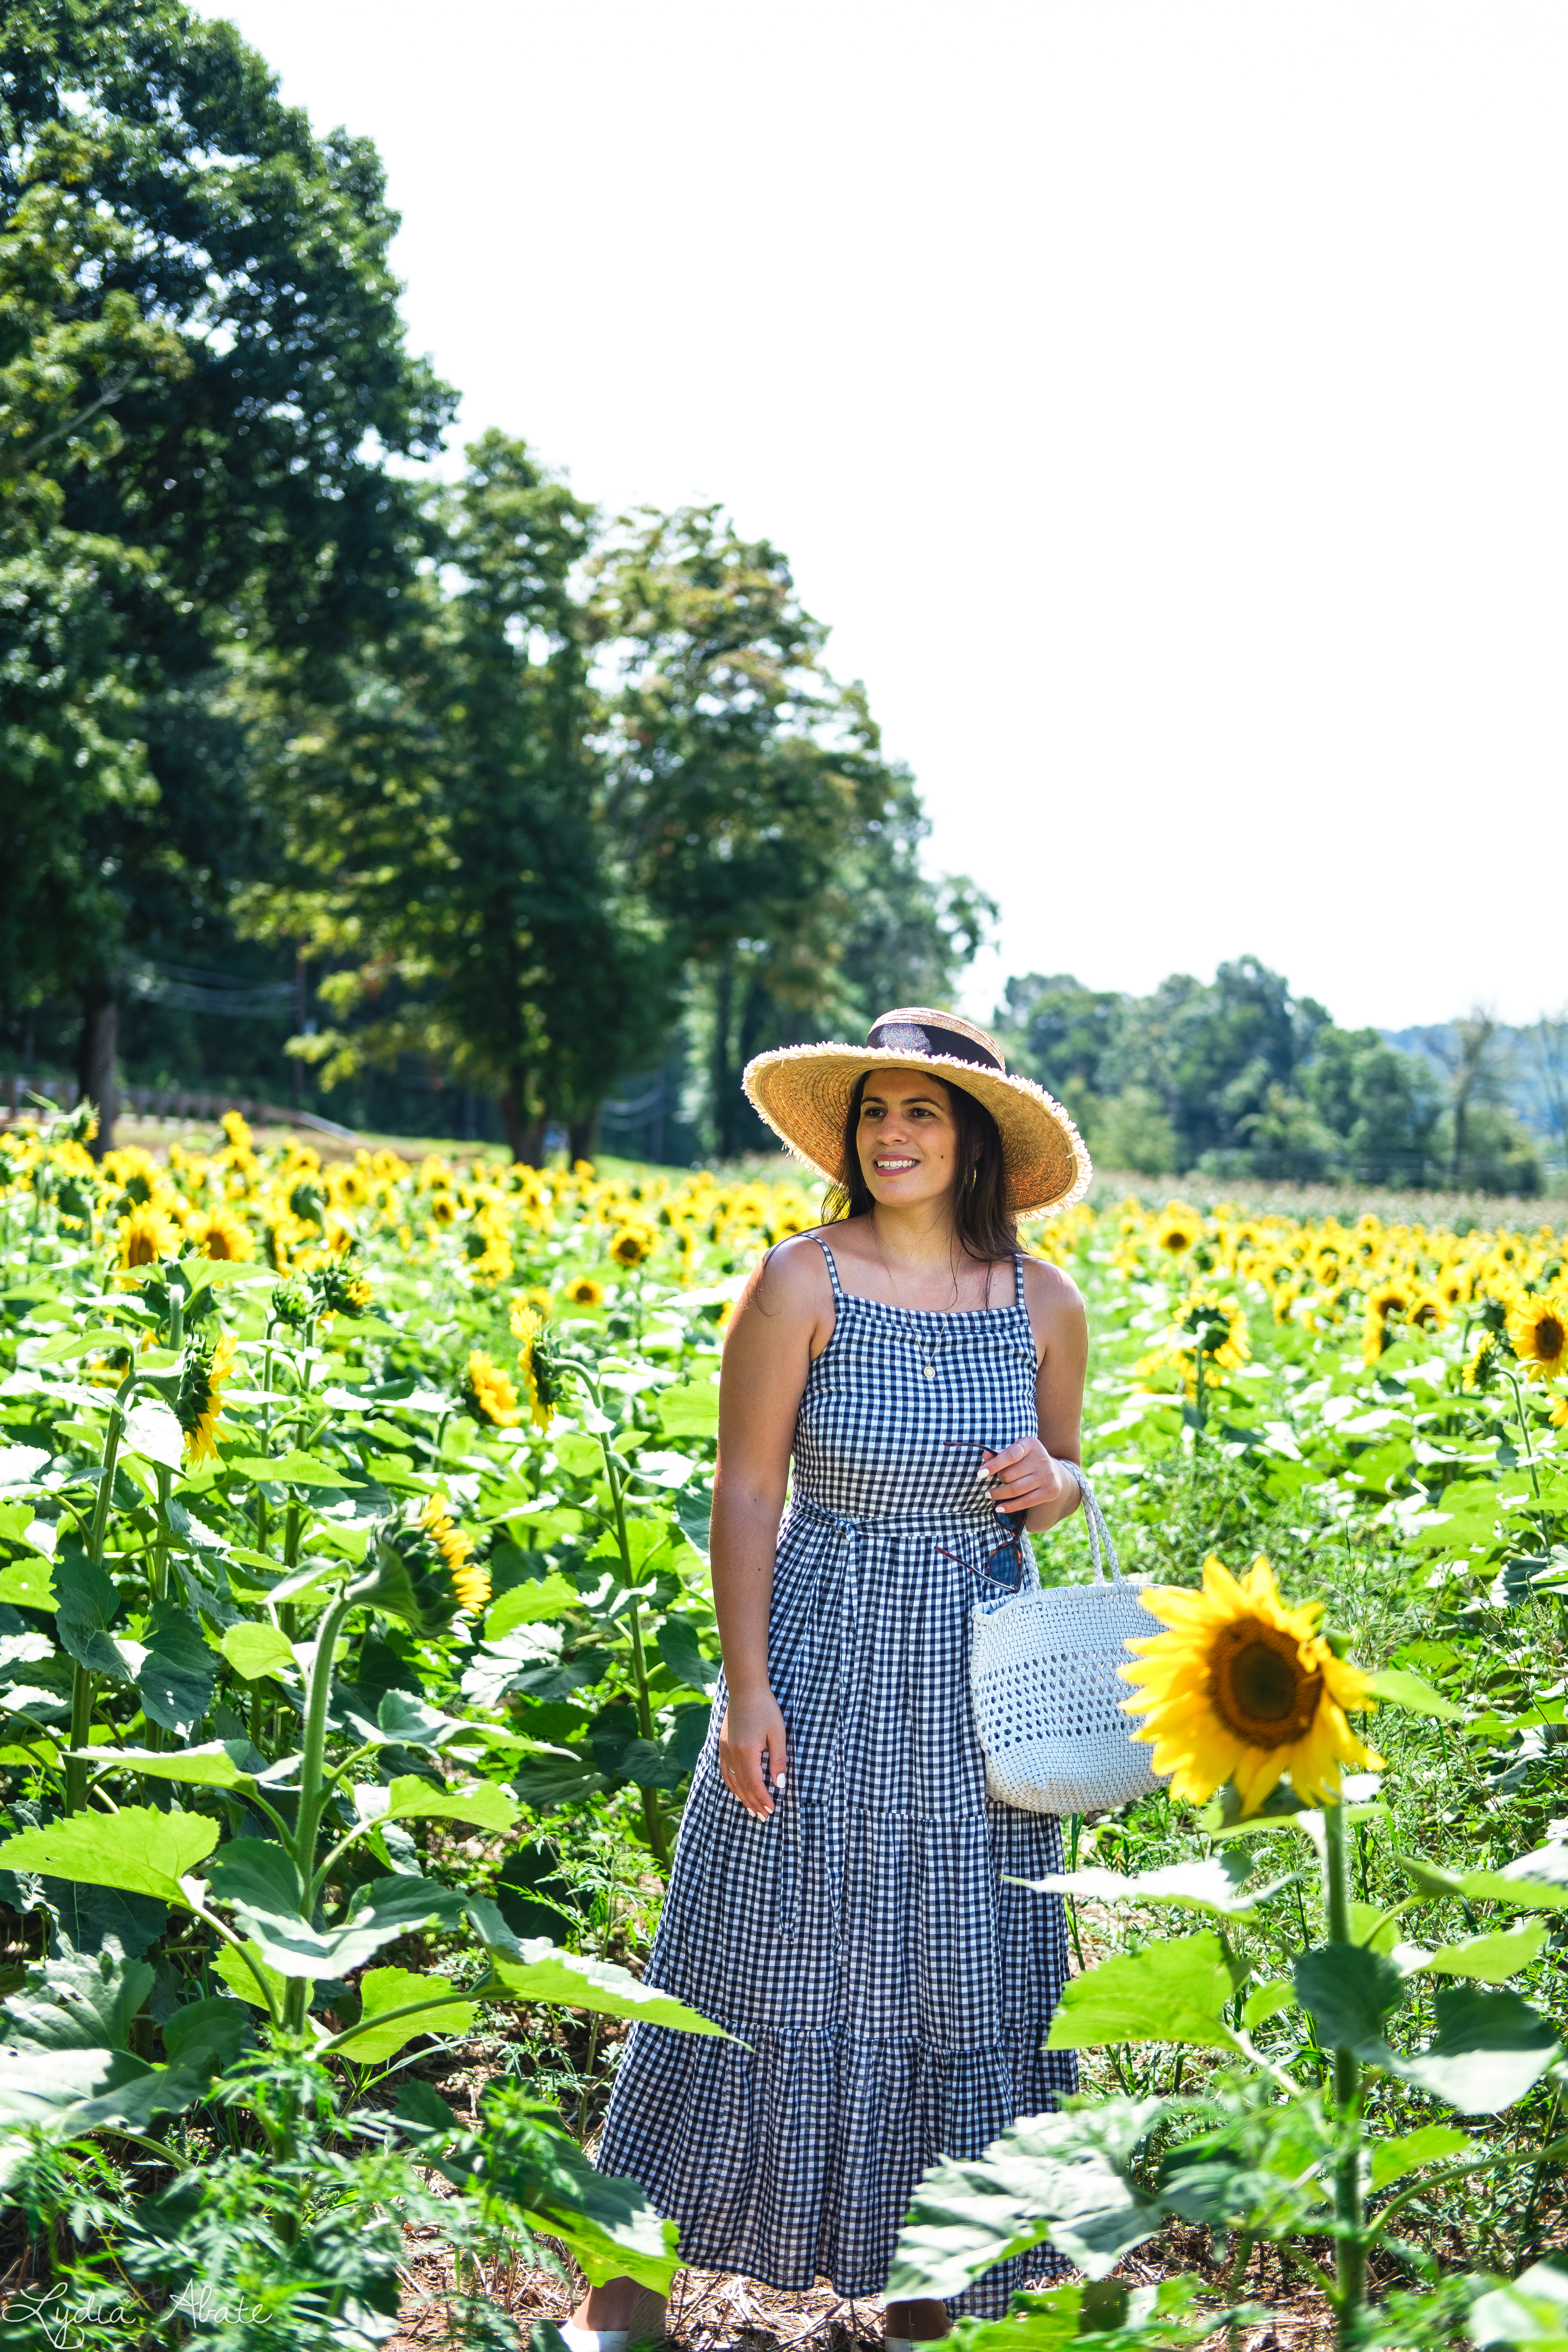 gingham maxi dress, straw hat, white caned leather tote bag, sunflowers-1.jpg